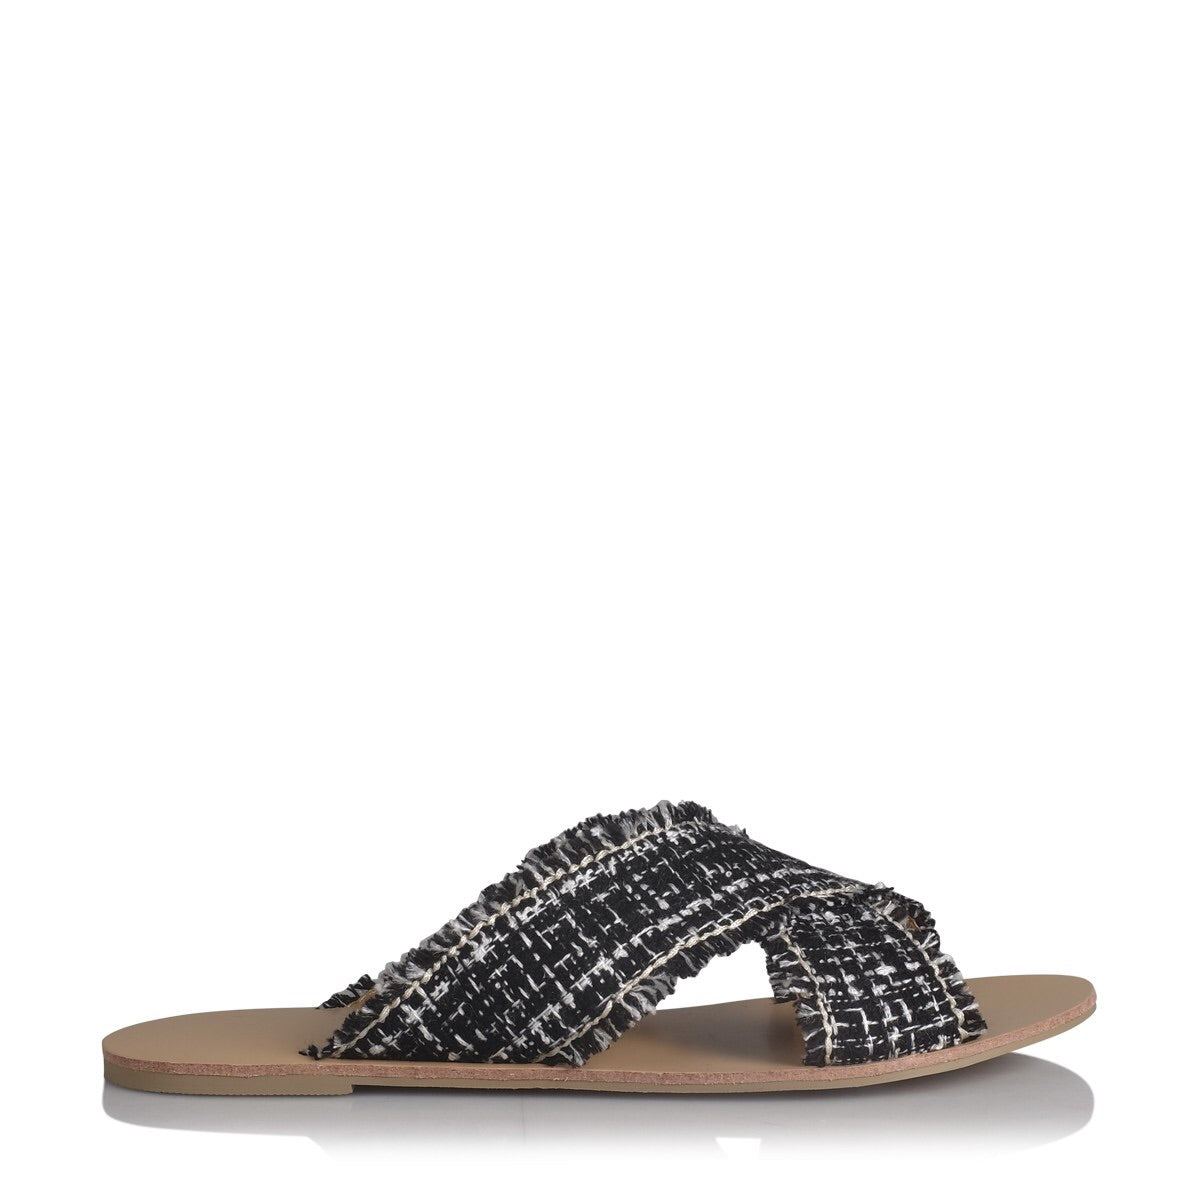 Coco Black Woven Slide by Billini Shoes